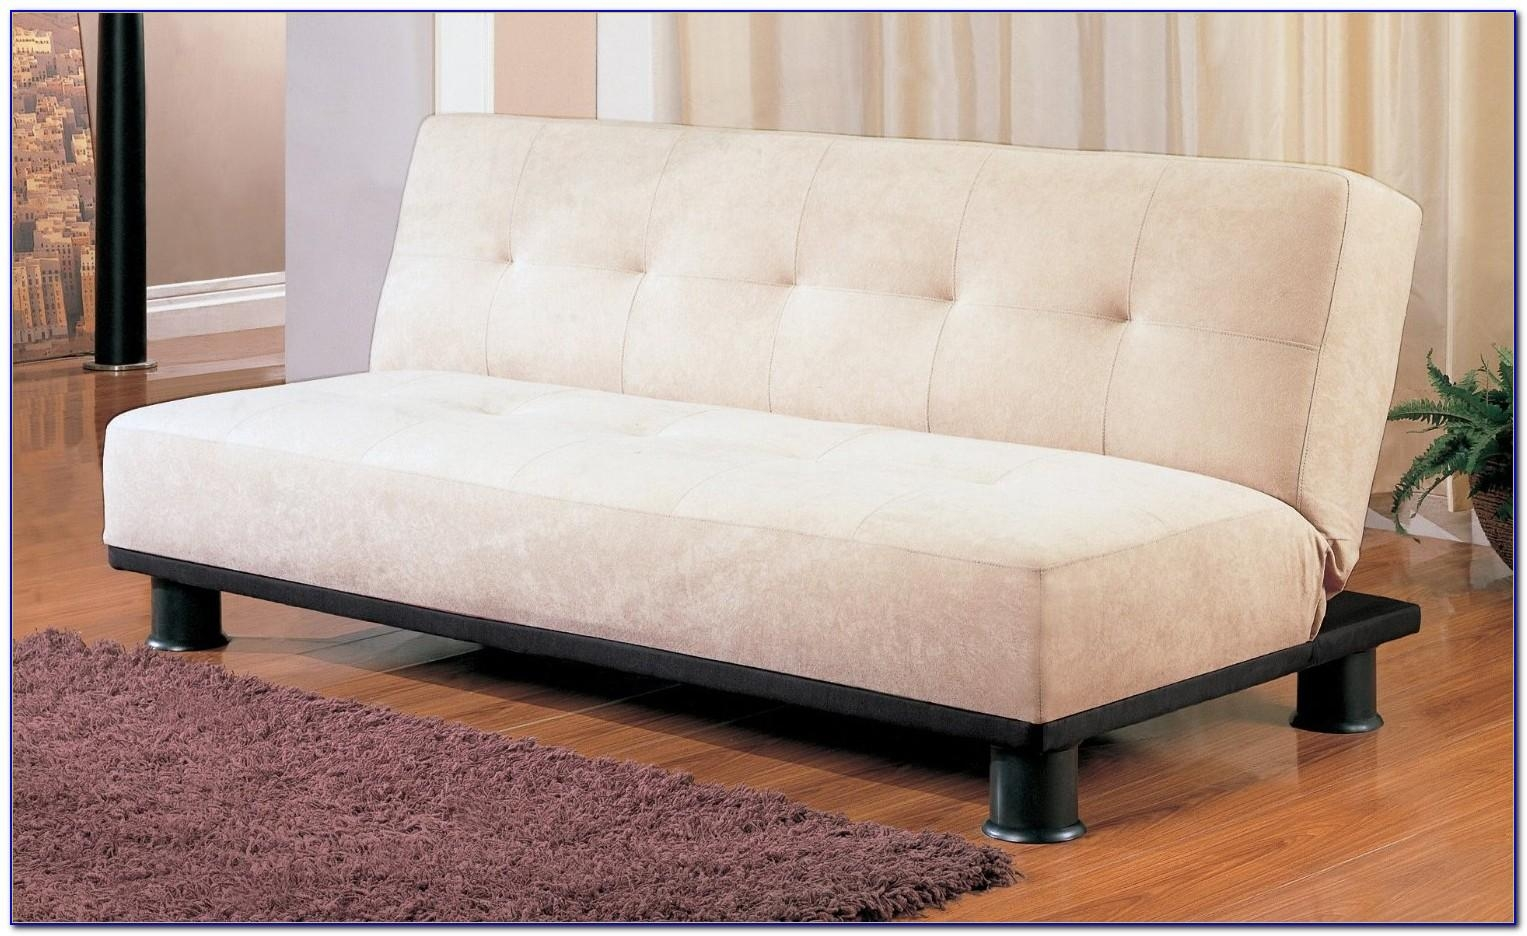 Castro Convertible Sofa Bed F Home Design | Genty For Castro Convertible Couches (View 16 of 20)